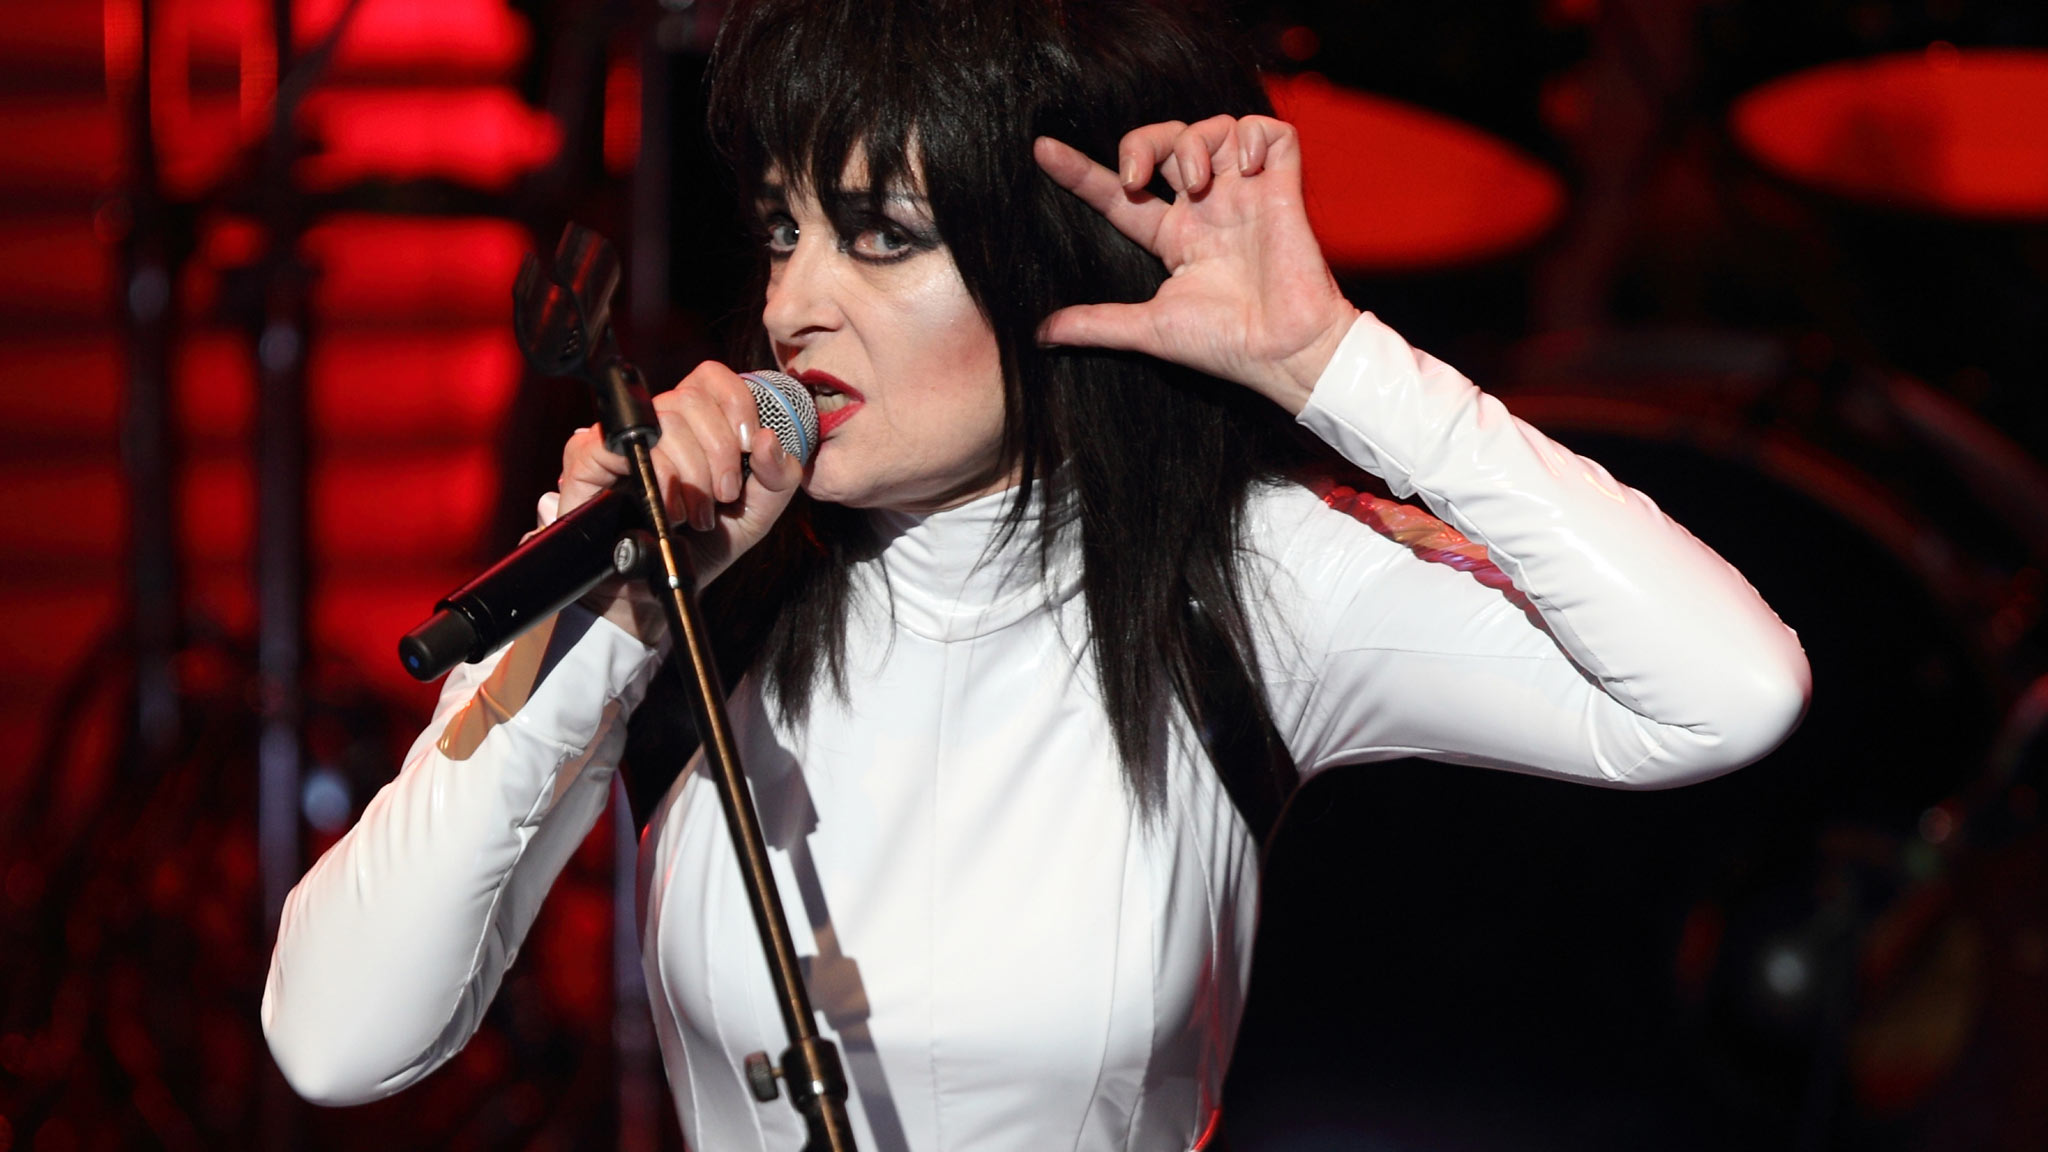 Meltdown Siouxsie Royal Festival Hall London Review